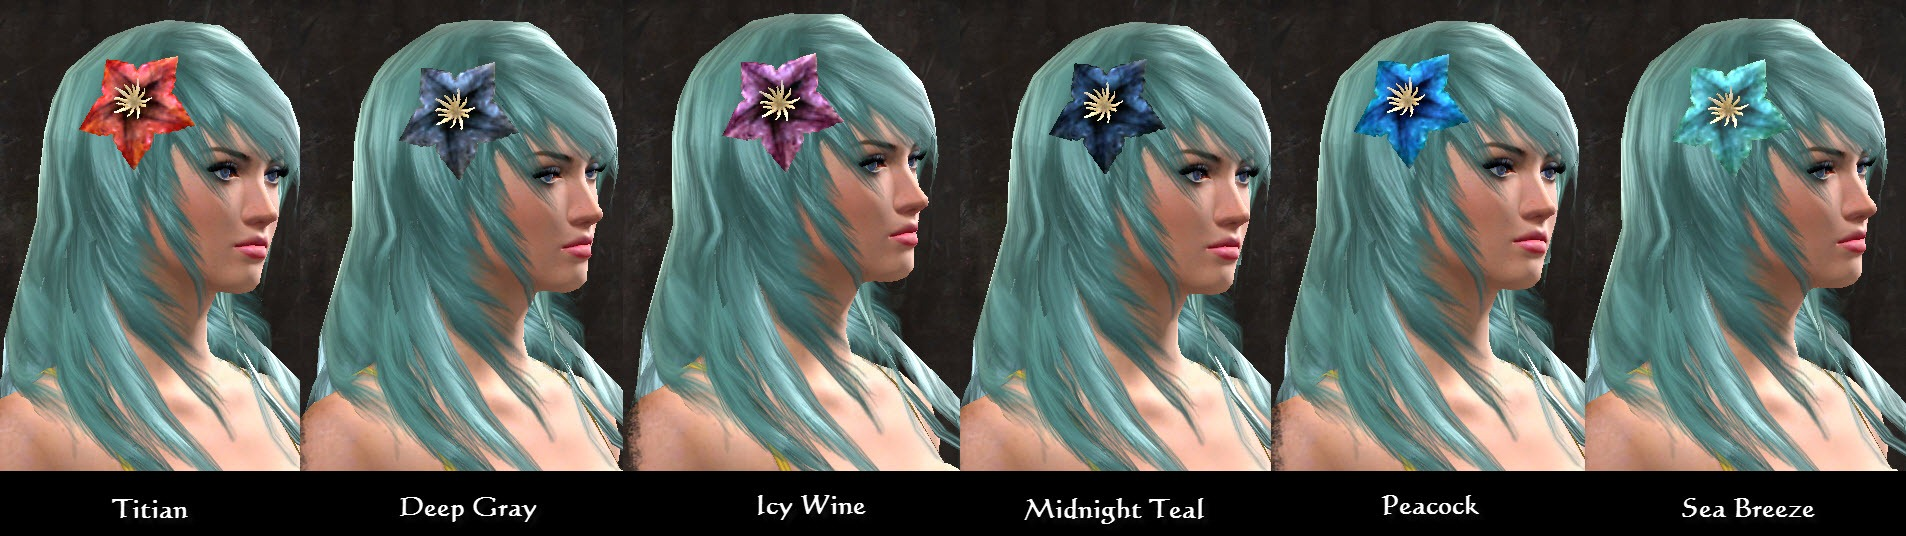 gw2-april-18-new-hair-accessory-colors